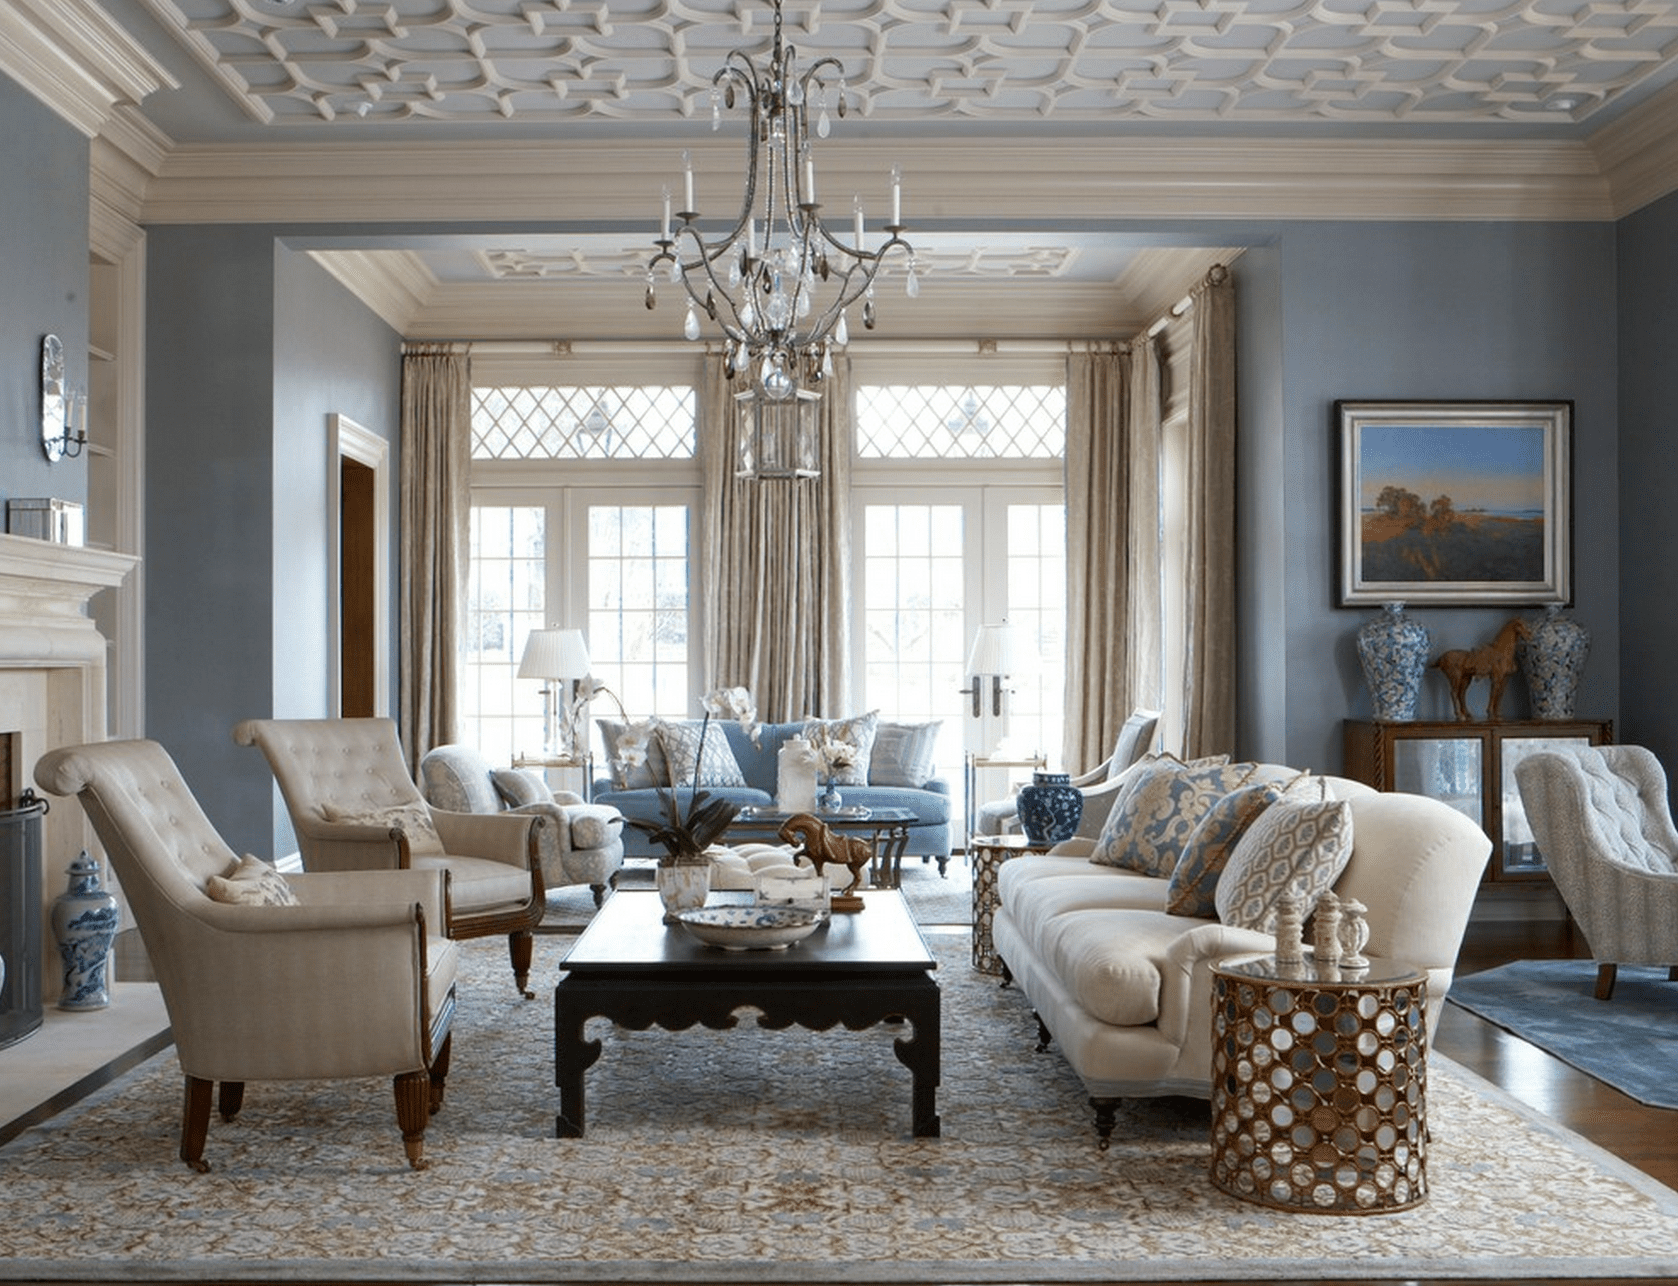 traditional living room interior design pictures fall ceiling designs for 23 rooms inspiration